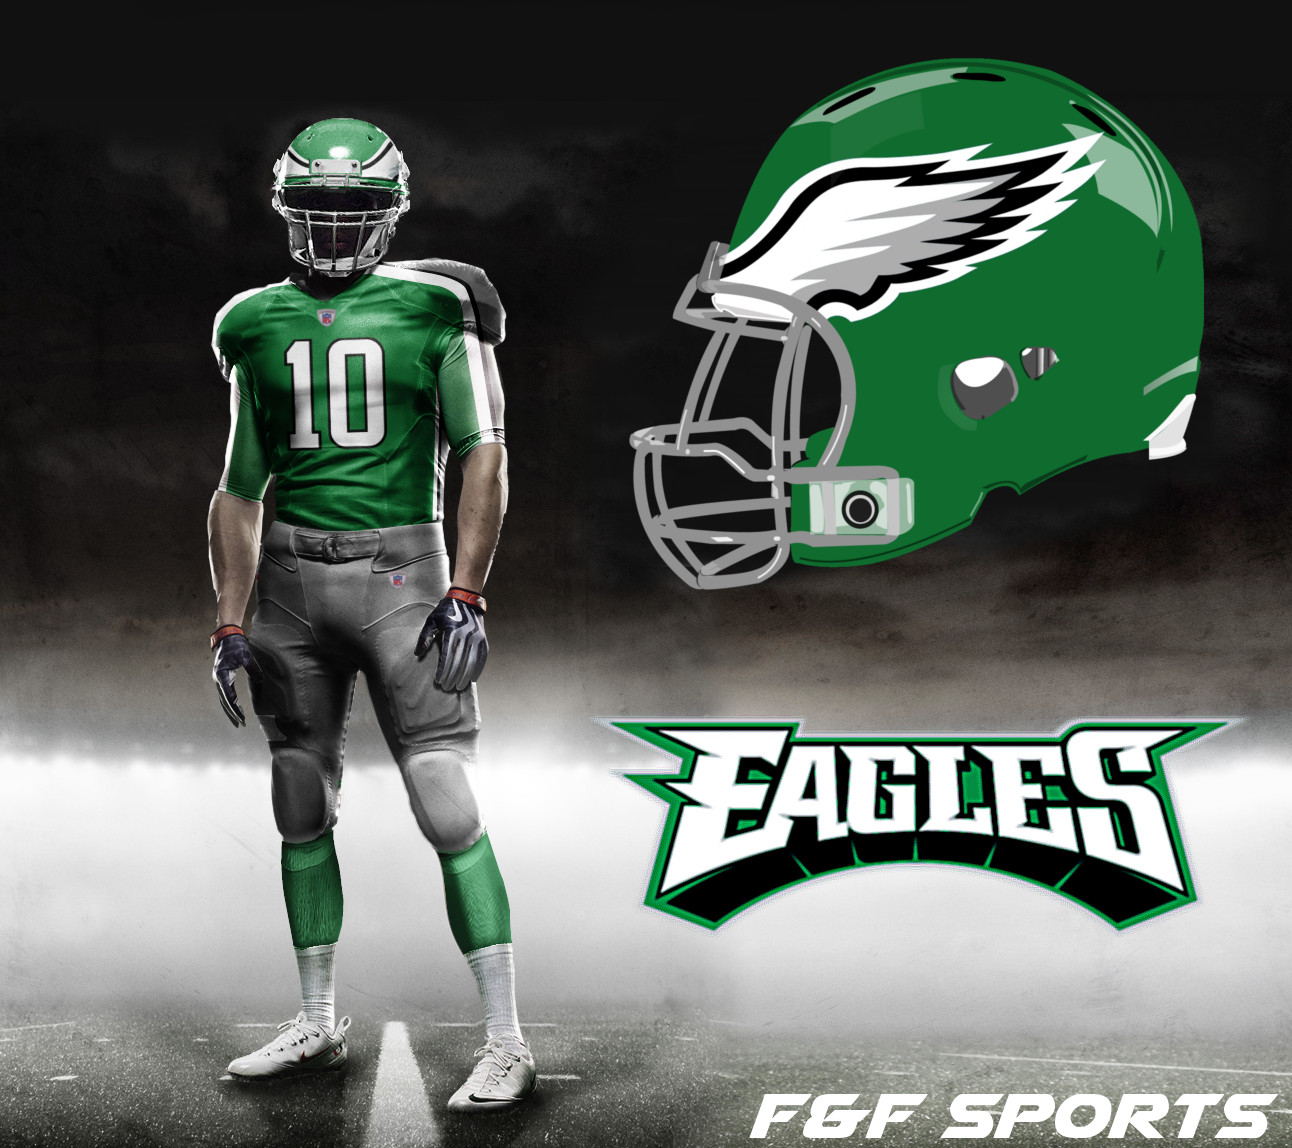 Philadelphia Eagles F Amp F Sports